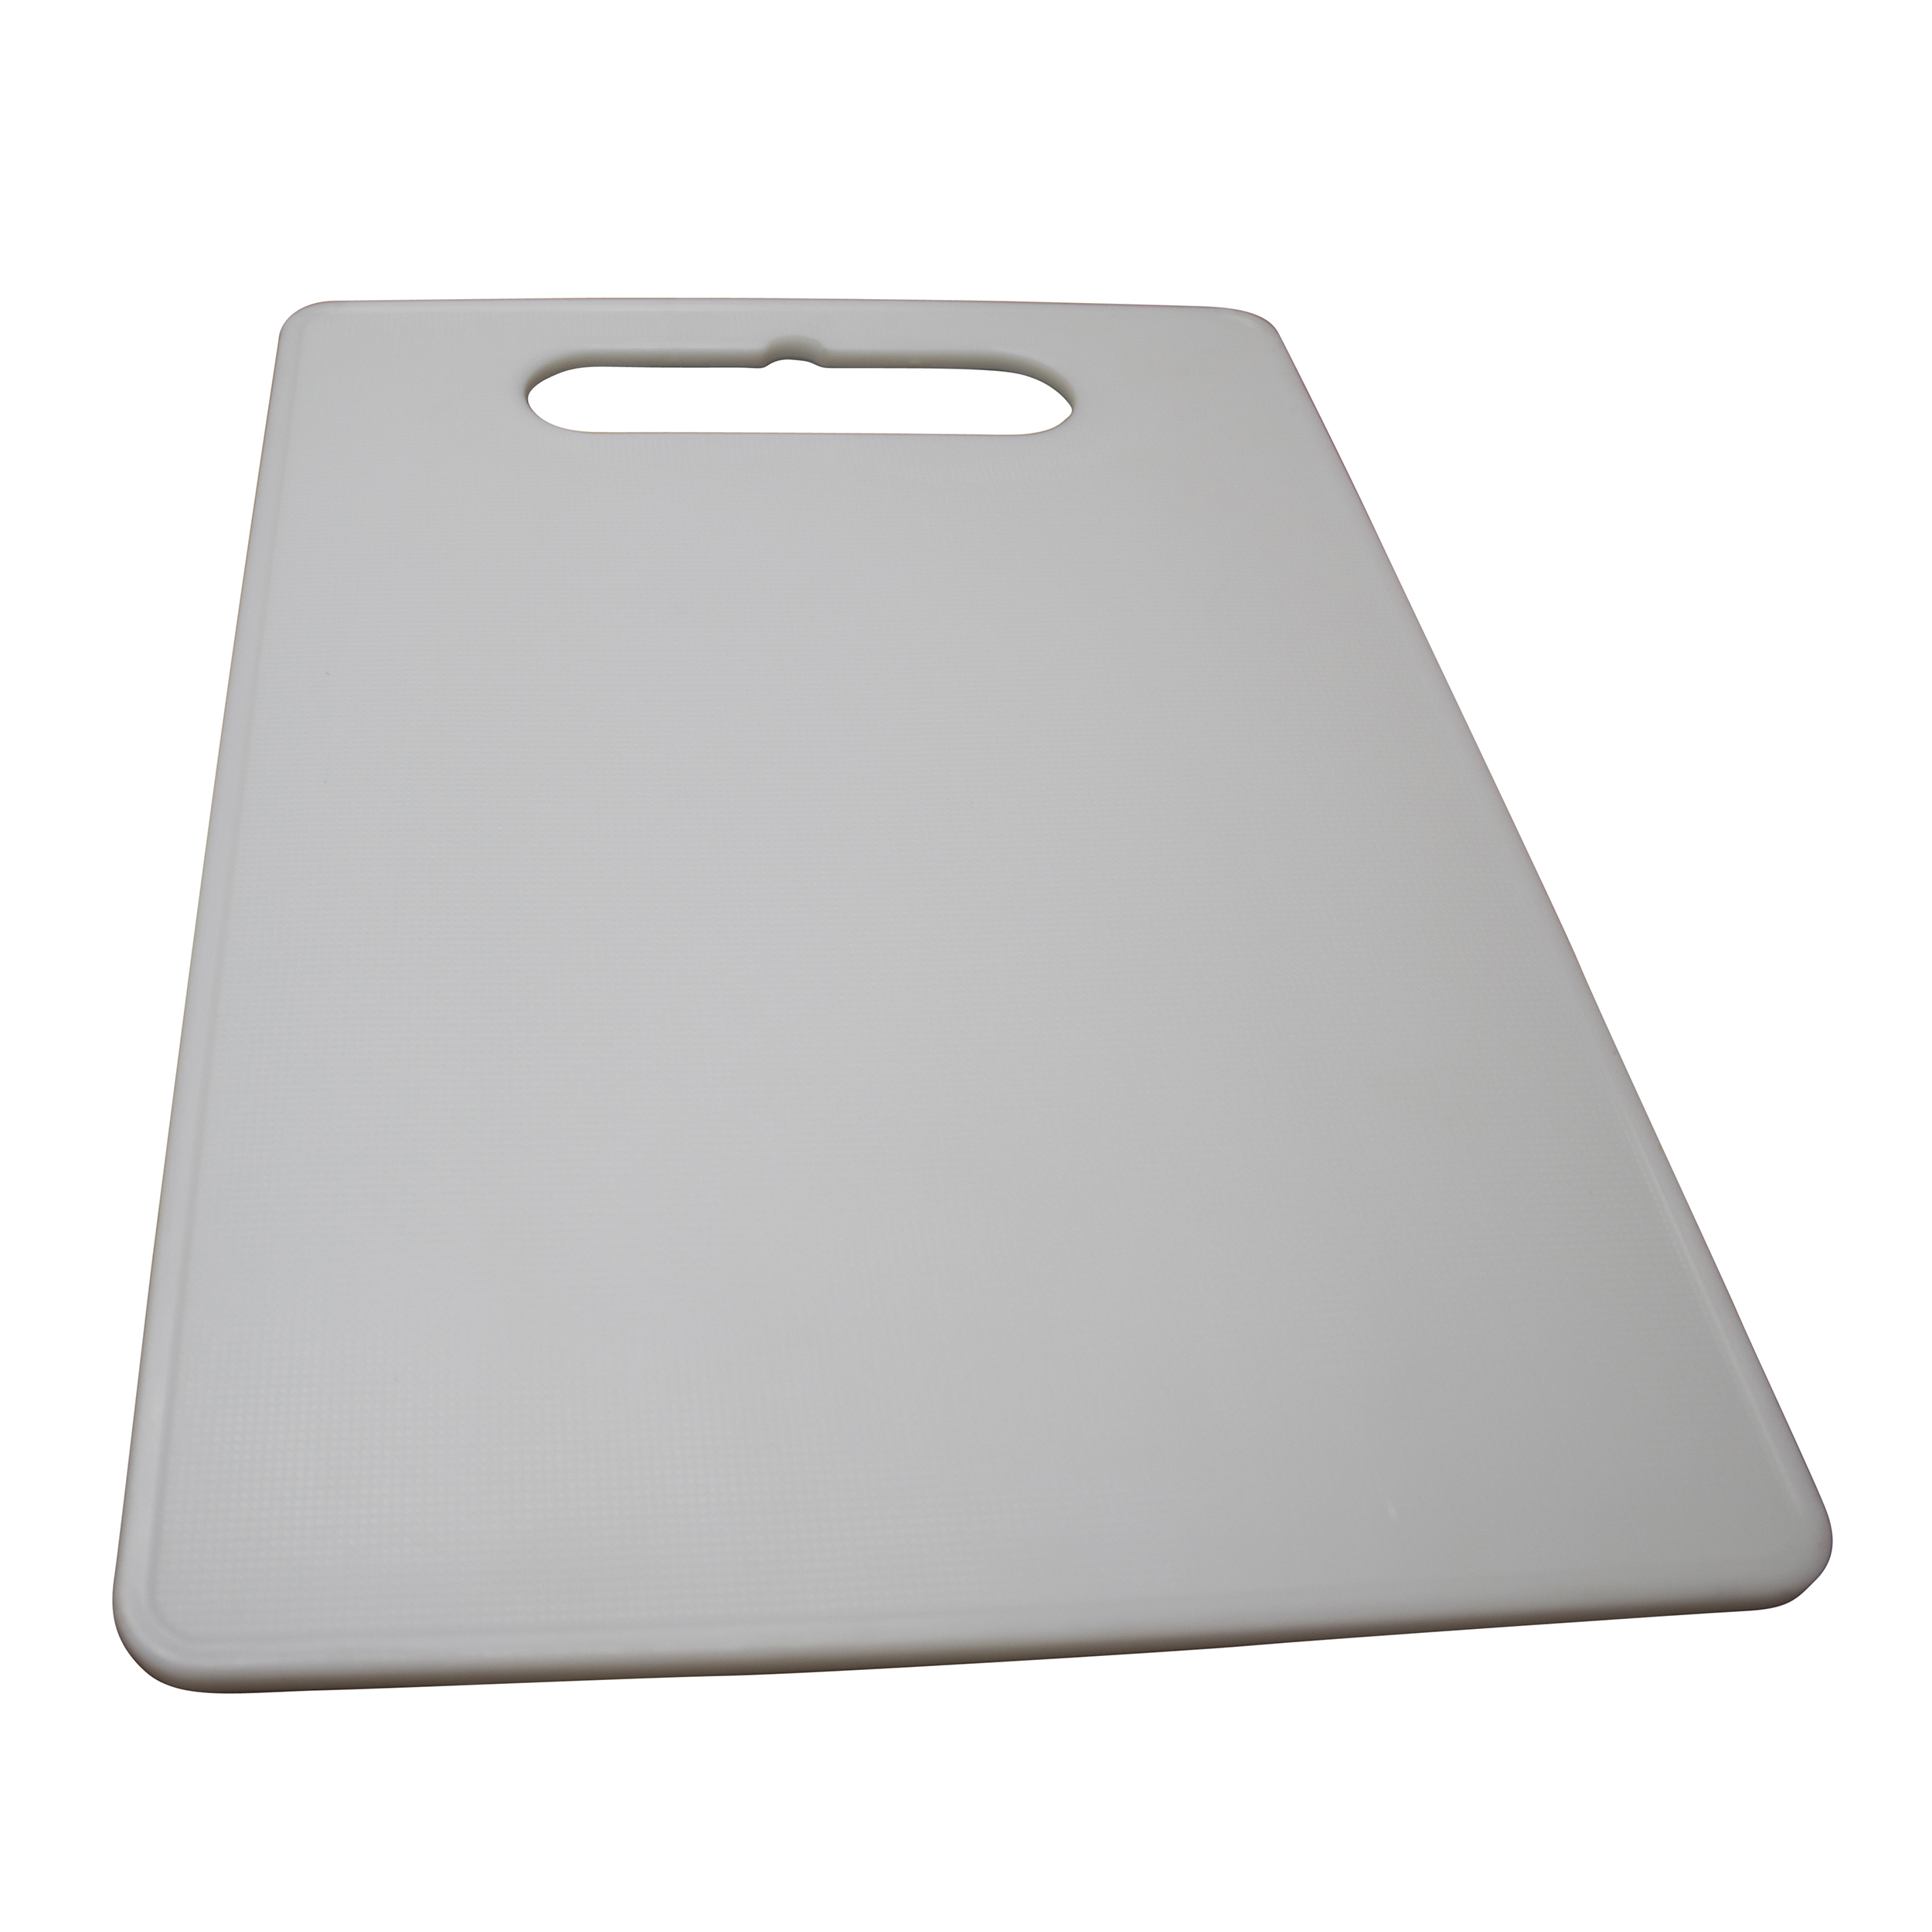 Imusa Imusa Large Plastic Cutting Board White Imusa